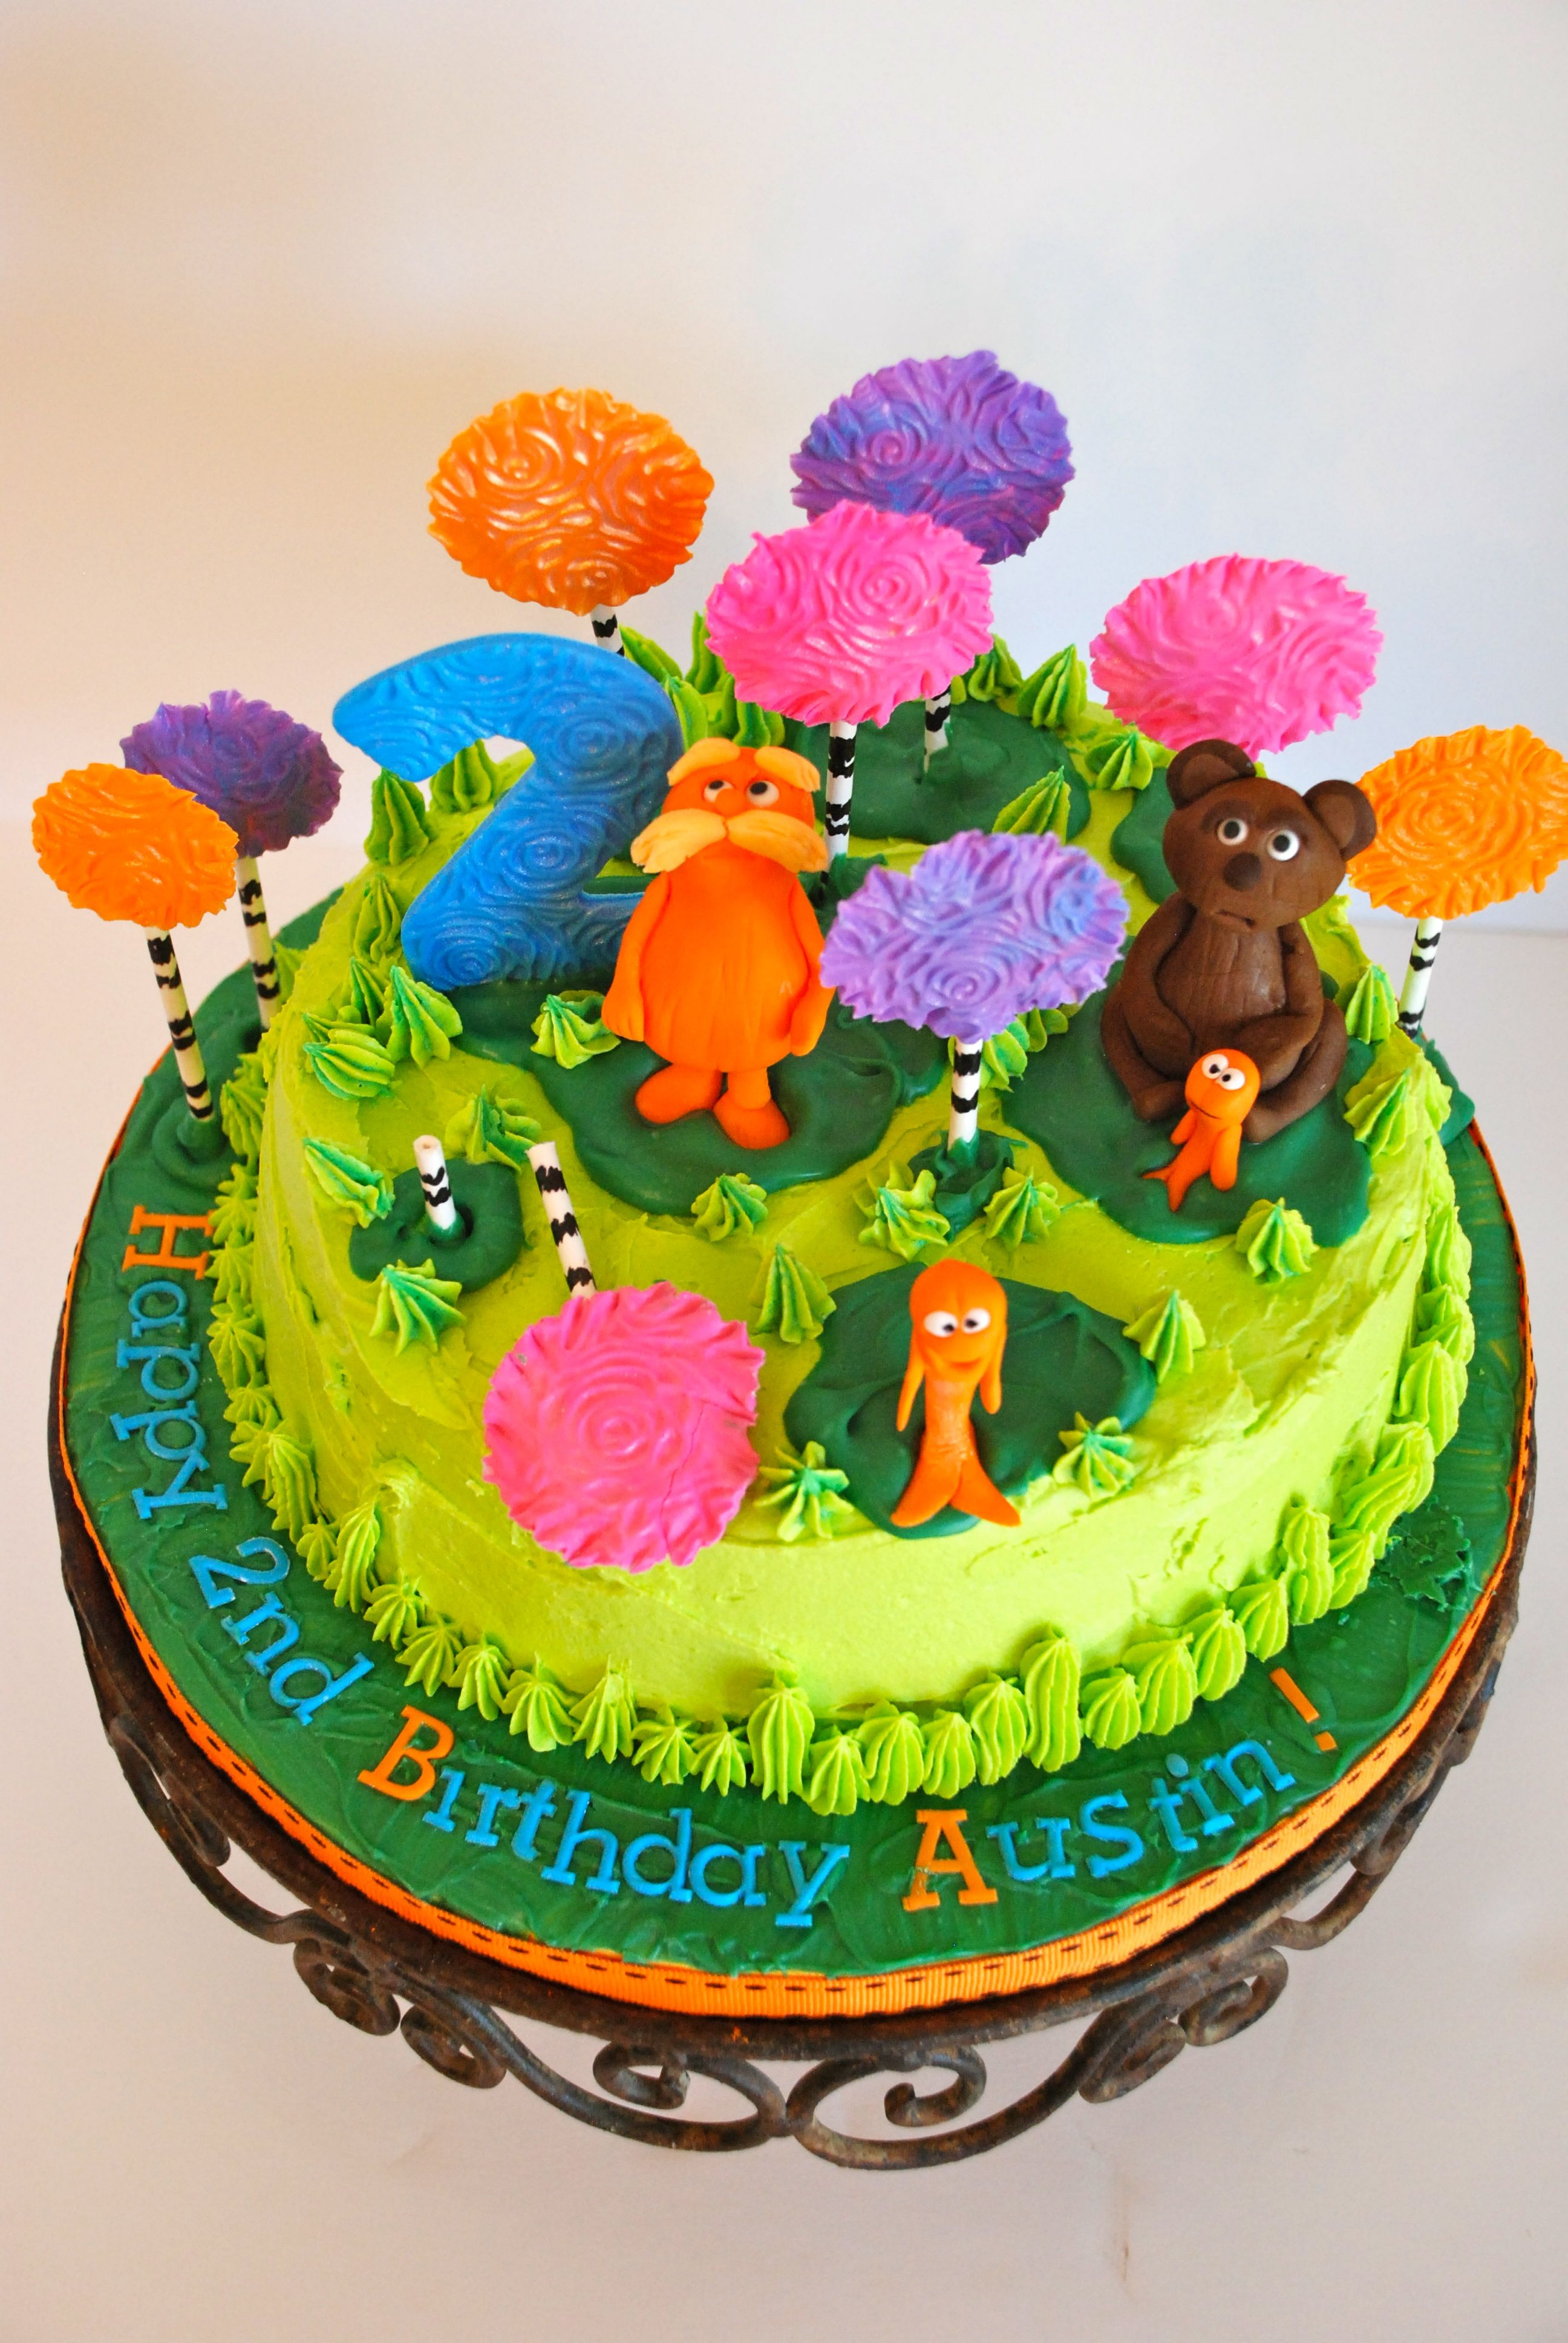 Lorax Cake With Whirly Swirly Trees Mr Lorax A Bear And The Fishy